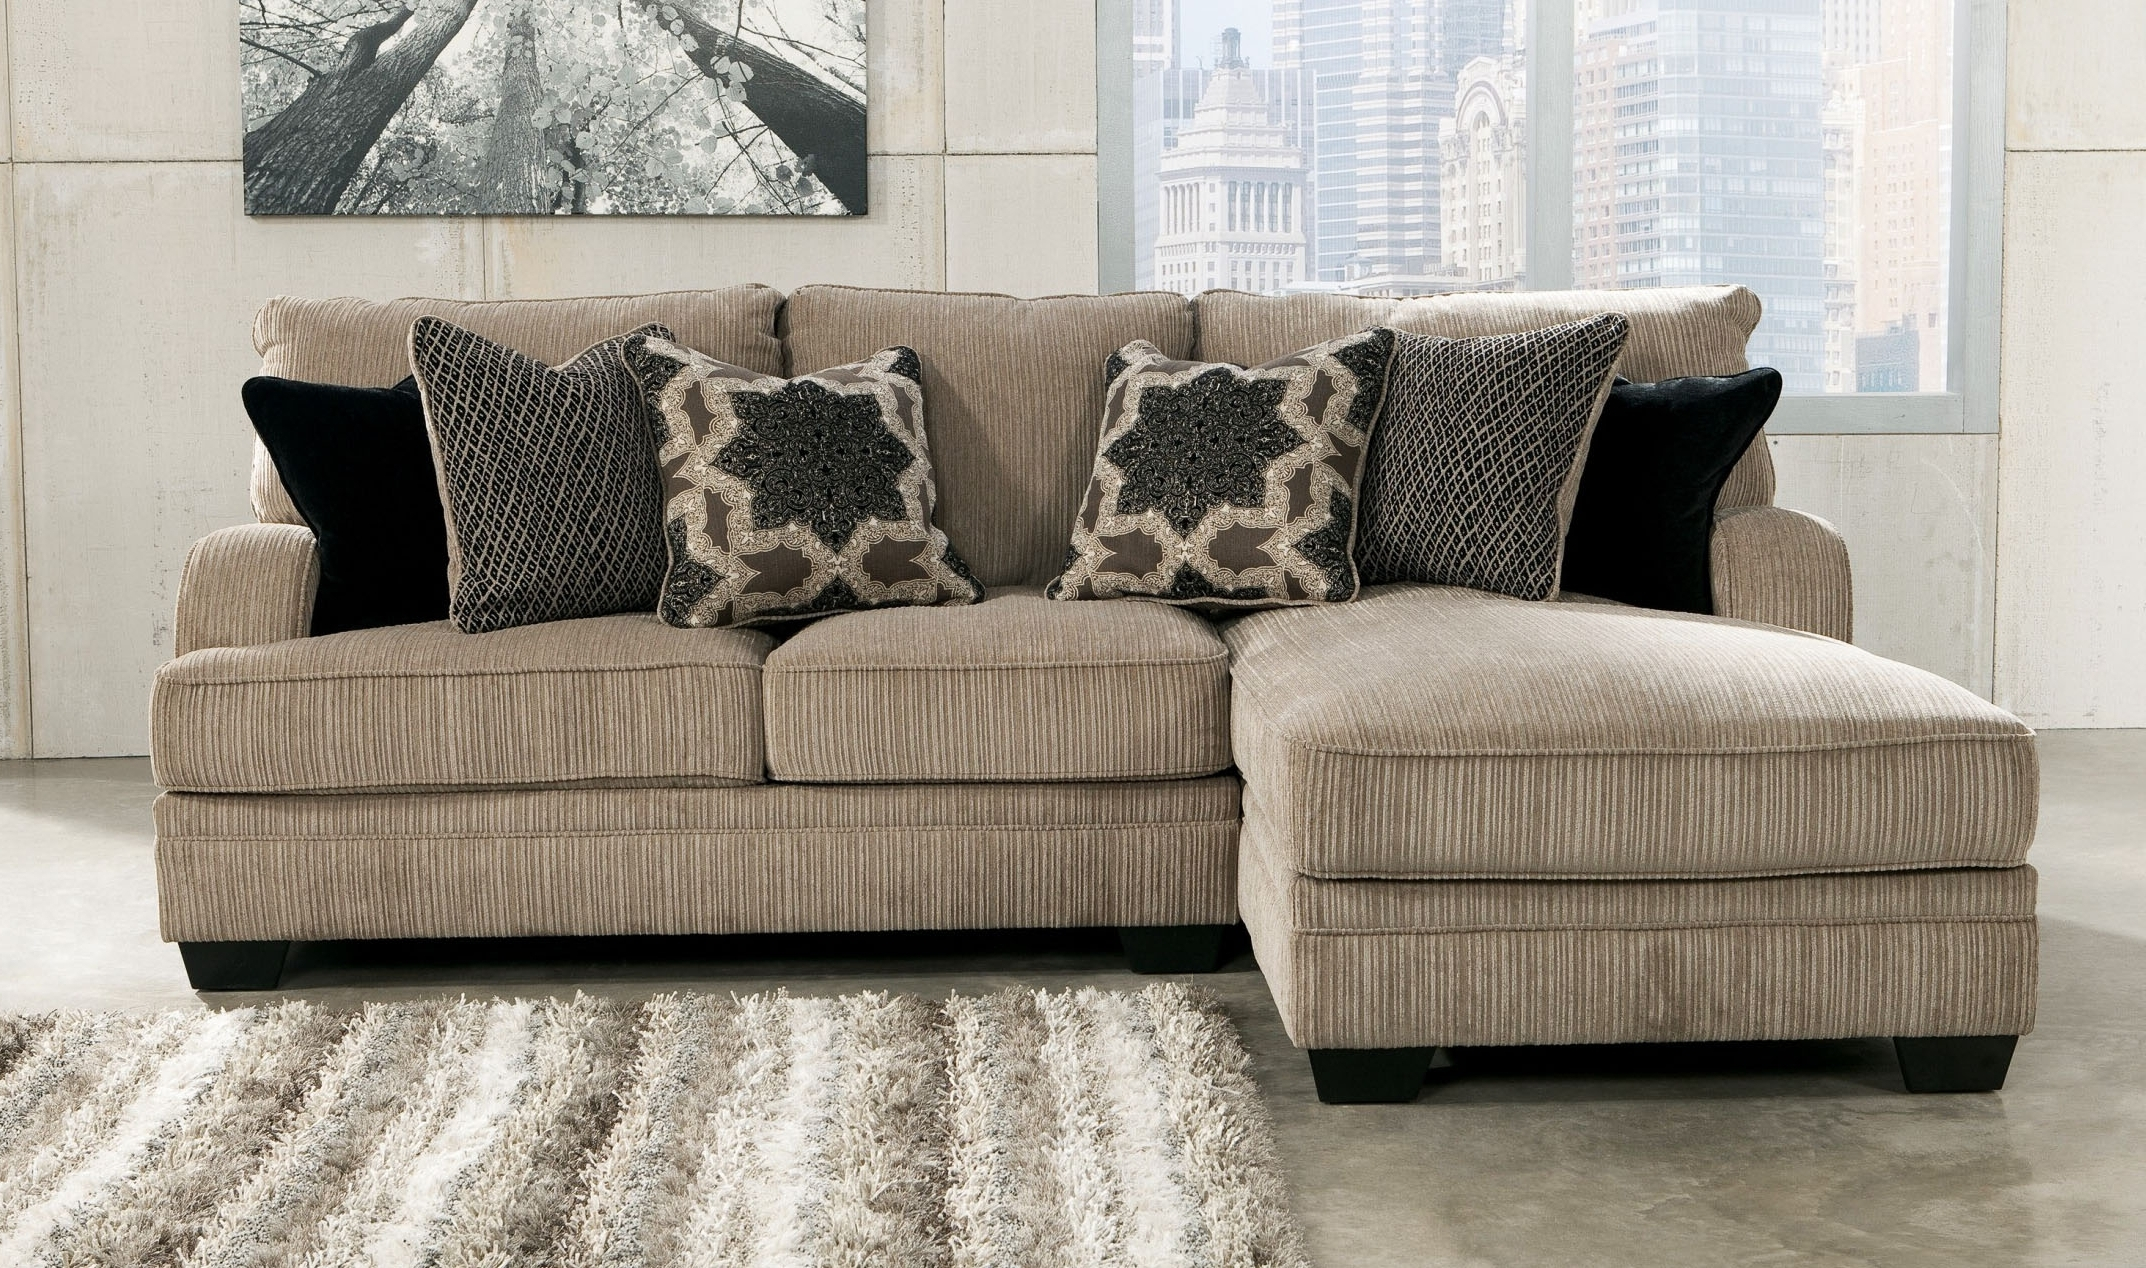 Well Known Inexpensive Sectional Sofas For Small Spaces Intended For Stylish Inexpensive Sectional Sofas For Small Spaces (View 5 of 15)